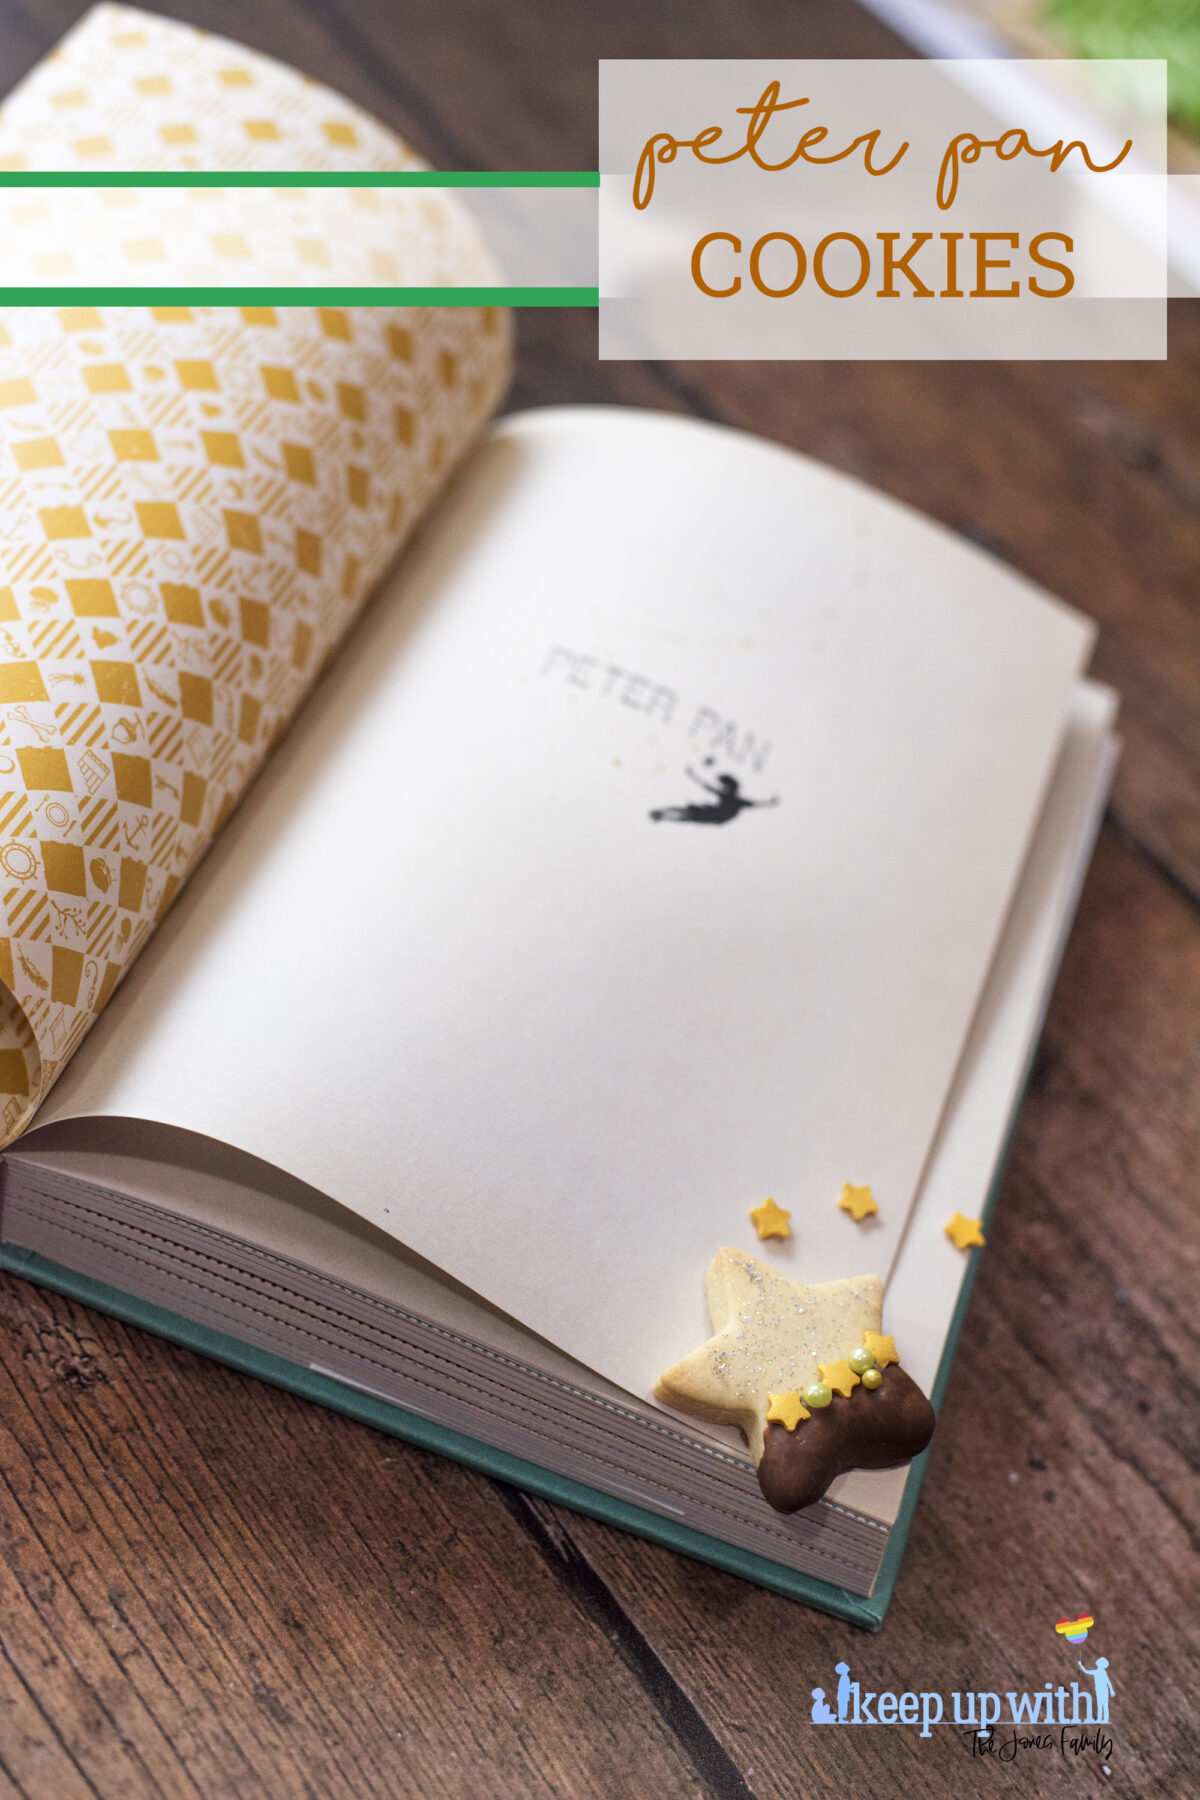 Image shows a wooden tabletop with a copy of J M Barrie's Peter Pan open. On the book pages and the table are small star shaped biscuits. Half of each biscuit is dipped in chocolate and  the other is sprinkled with silver edible glitter.  The dividing line is decorated with yellow star sprinkles and green pearl shaped sprinkles. Image by Keep Up With The Jones Family